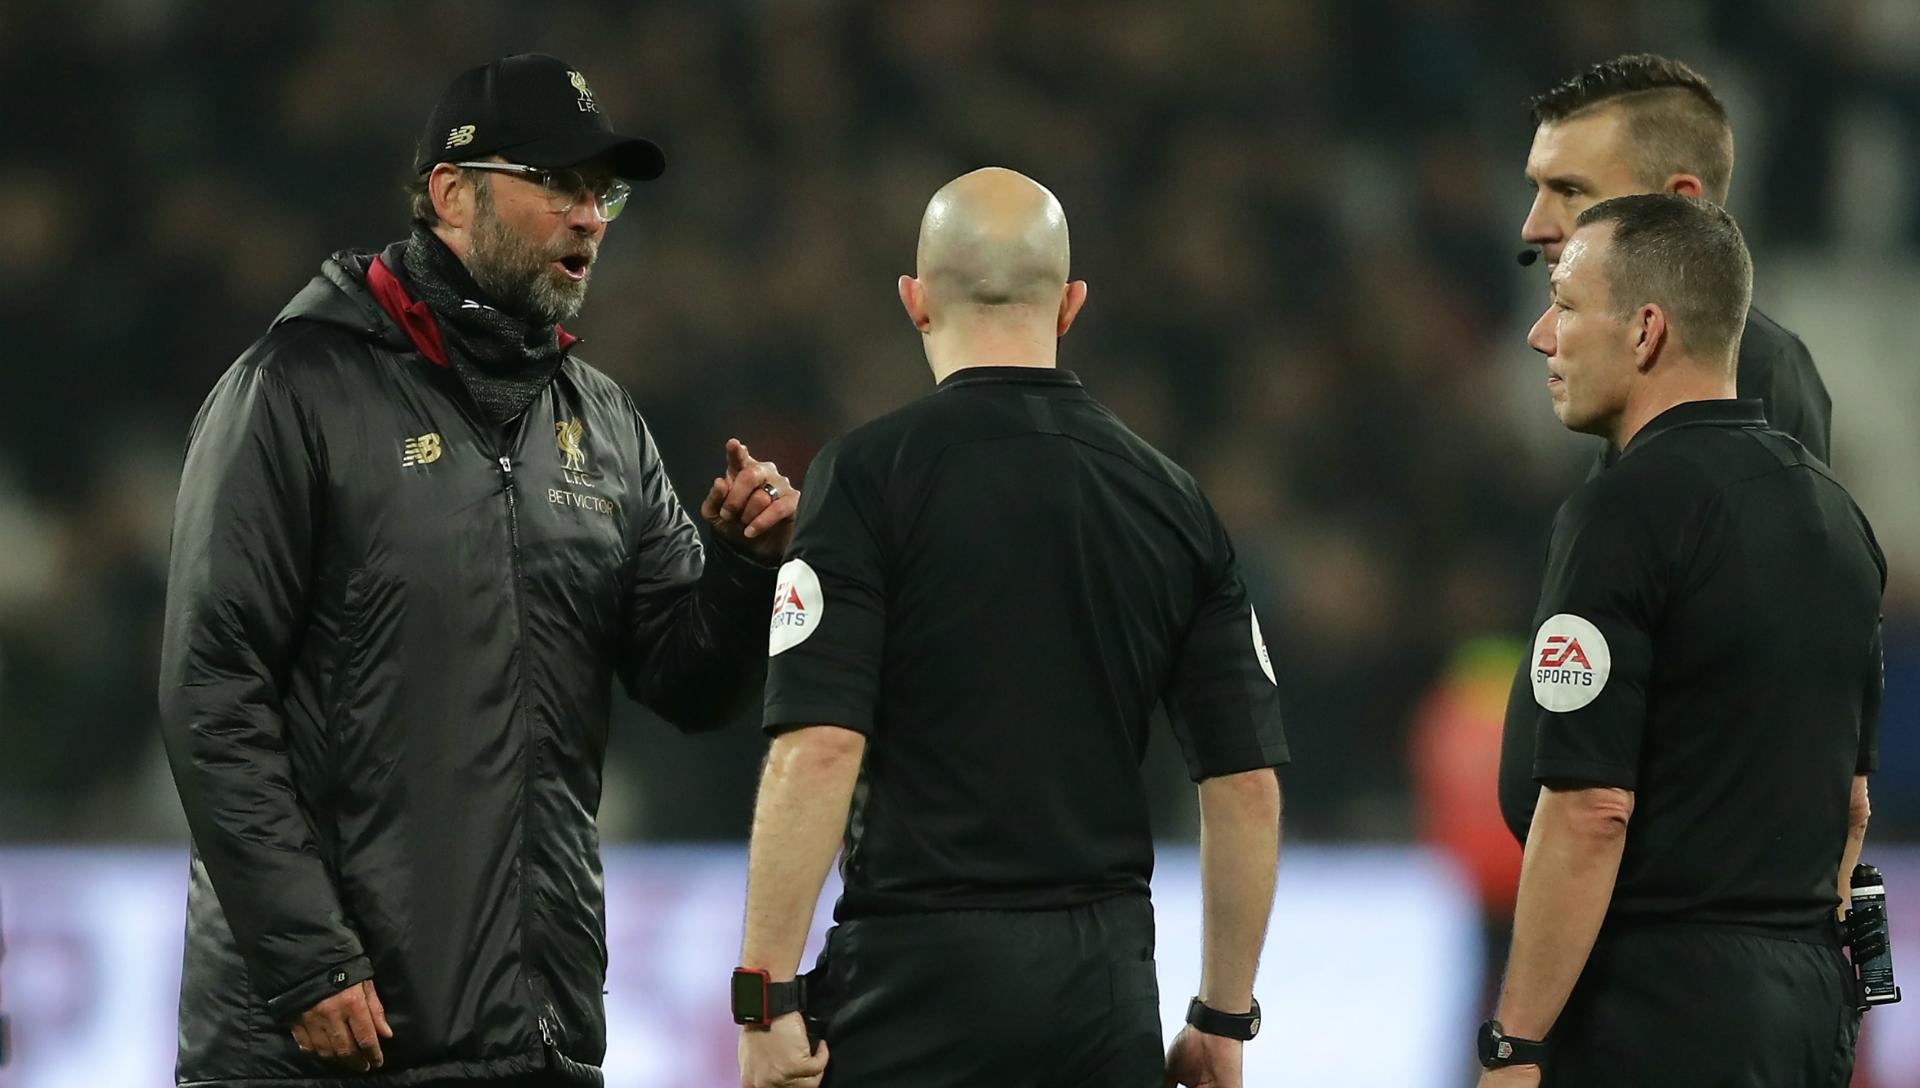 Klopp fined £45,000 referee comments